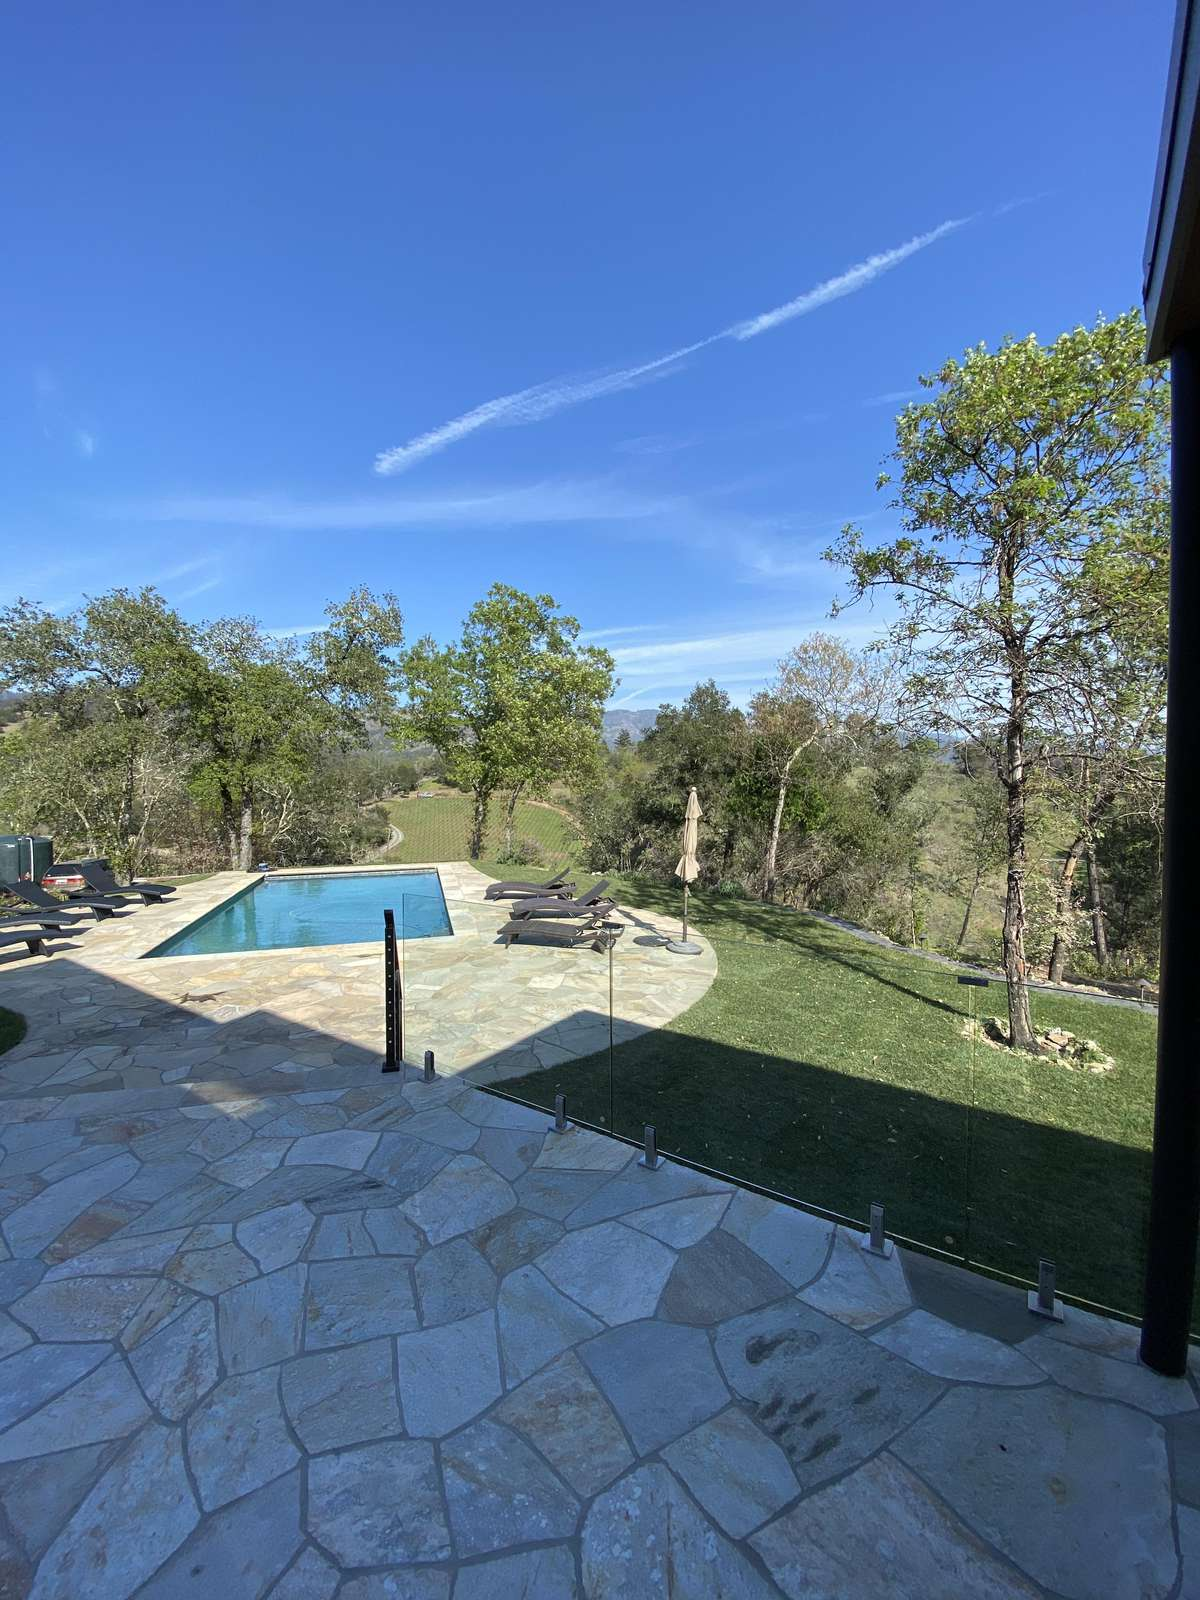 View of pool from patio